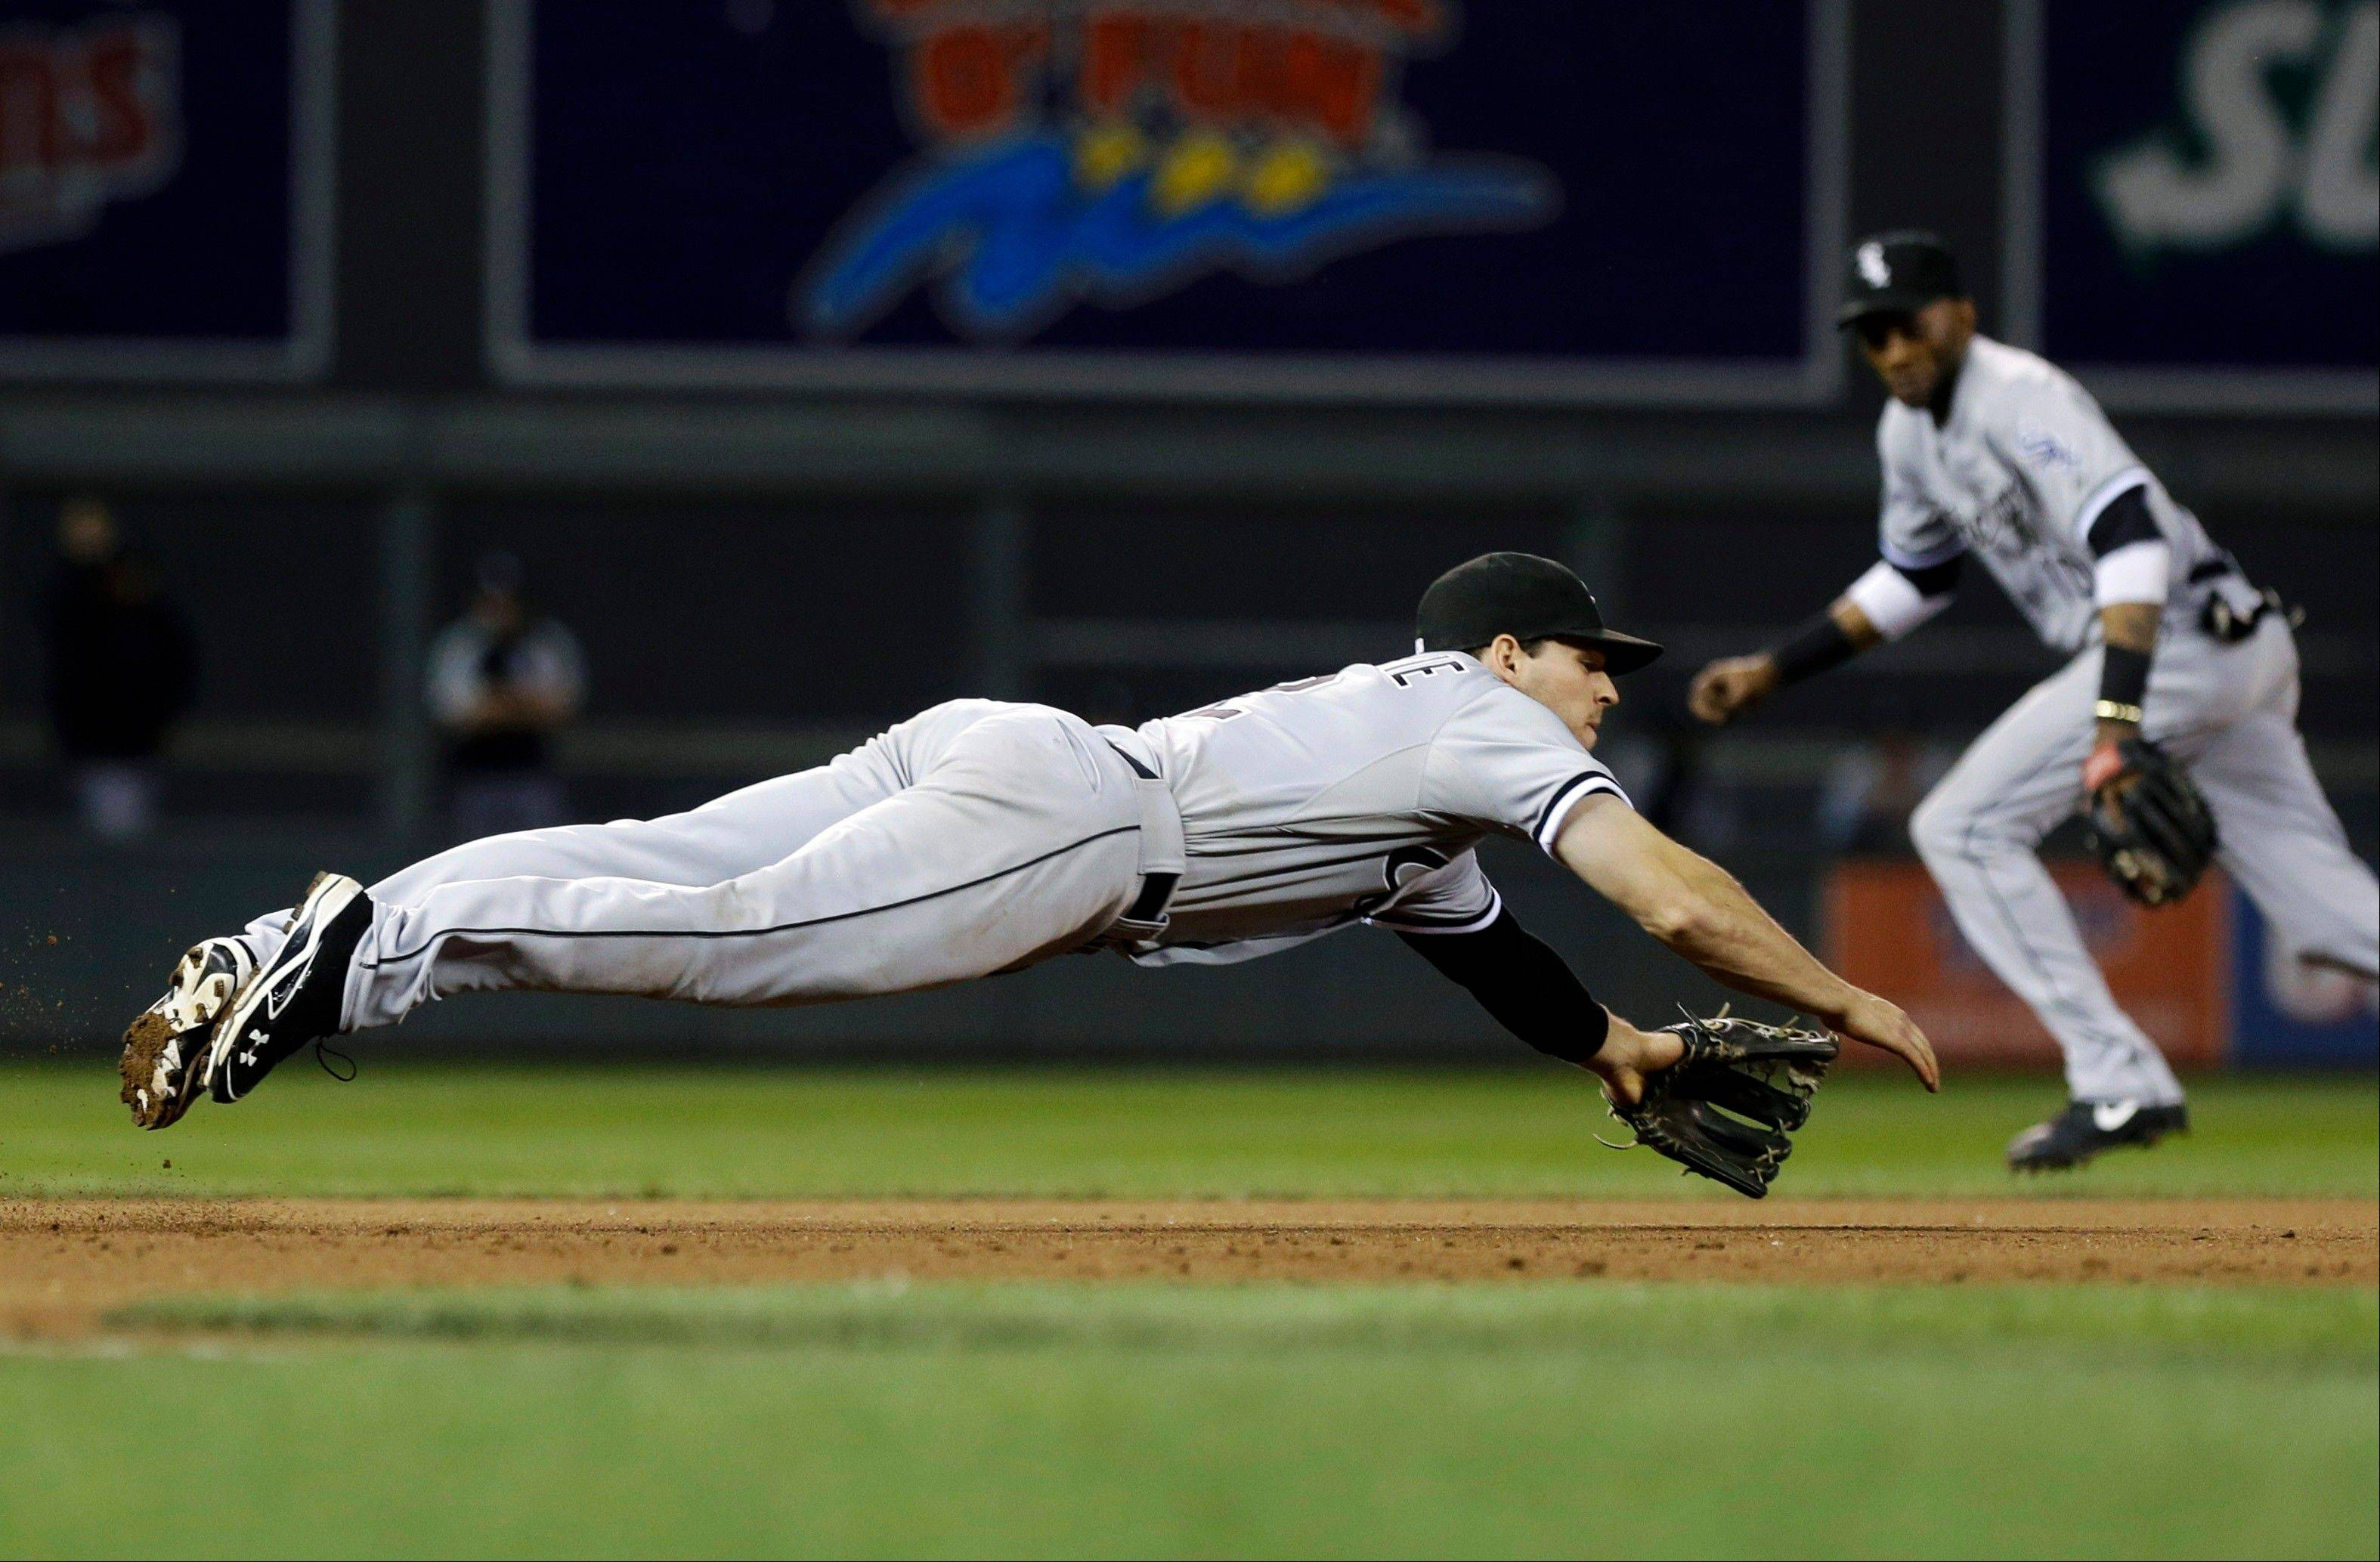 White Sox' Conor Gillaspie makes a futile dive for a sharp grounder off the bat of Minnesota Twins Ryan Doumit for a hit in the seventh inning of a baseball game Tuesday, June 18, 2013 in Minneapolis. The Twins won 7-5.